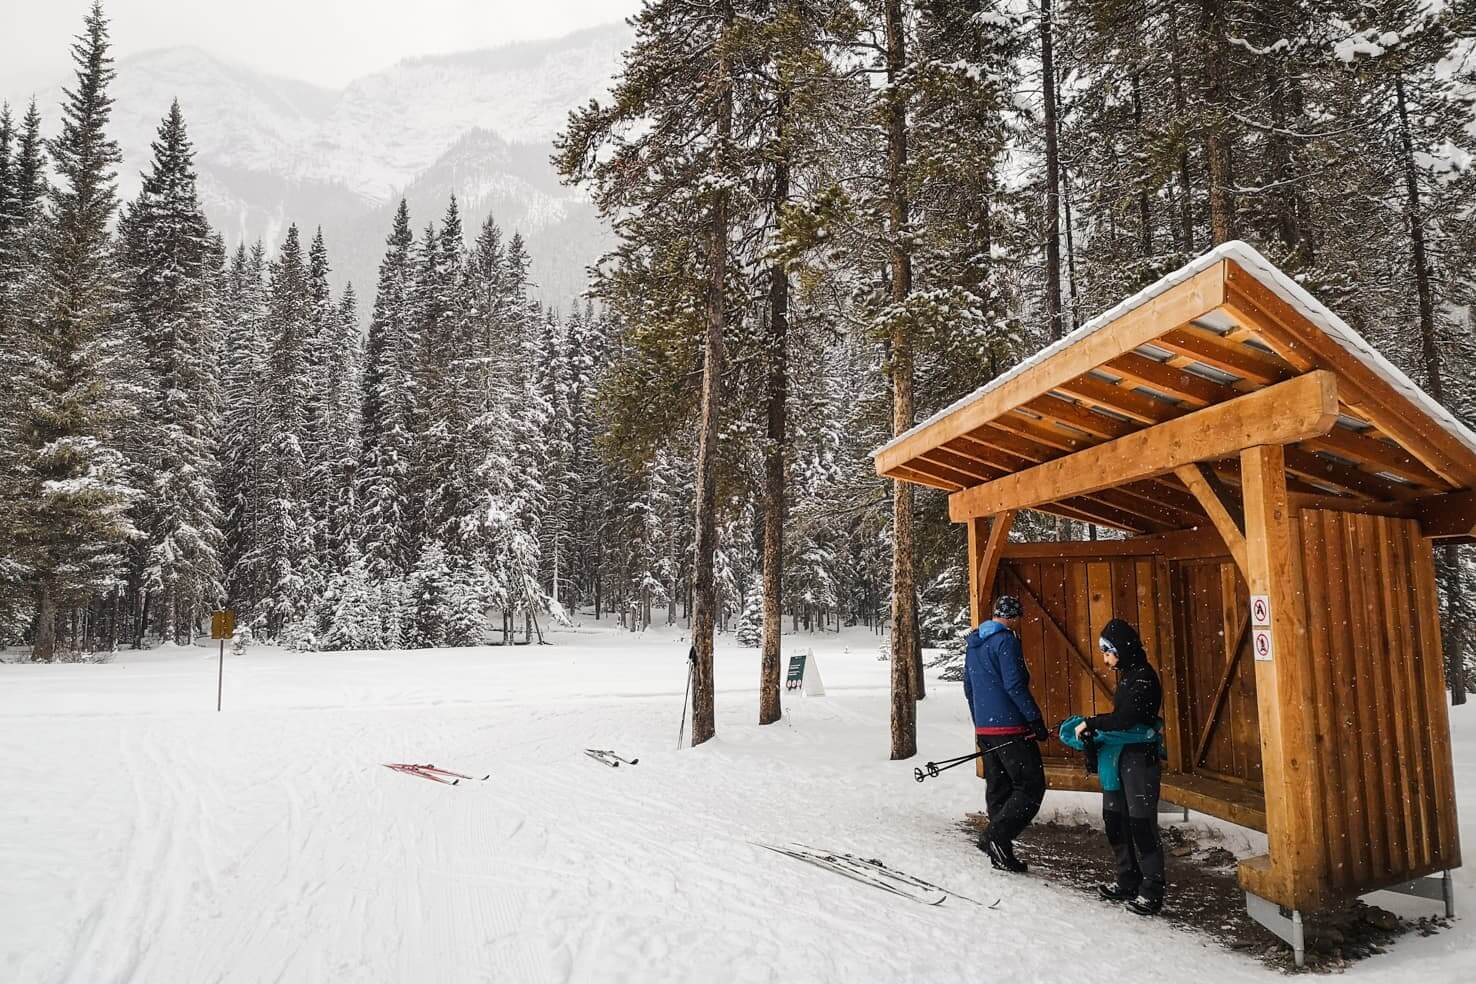 Cross country ski trails in Banff National Park - Spray River Loop in Banff